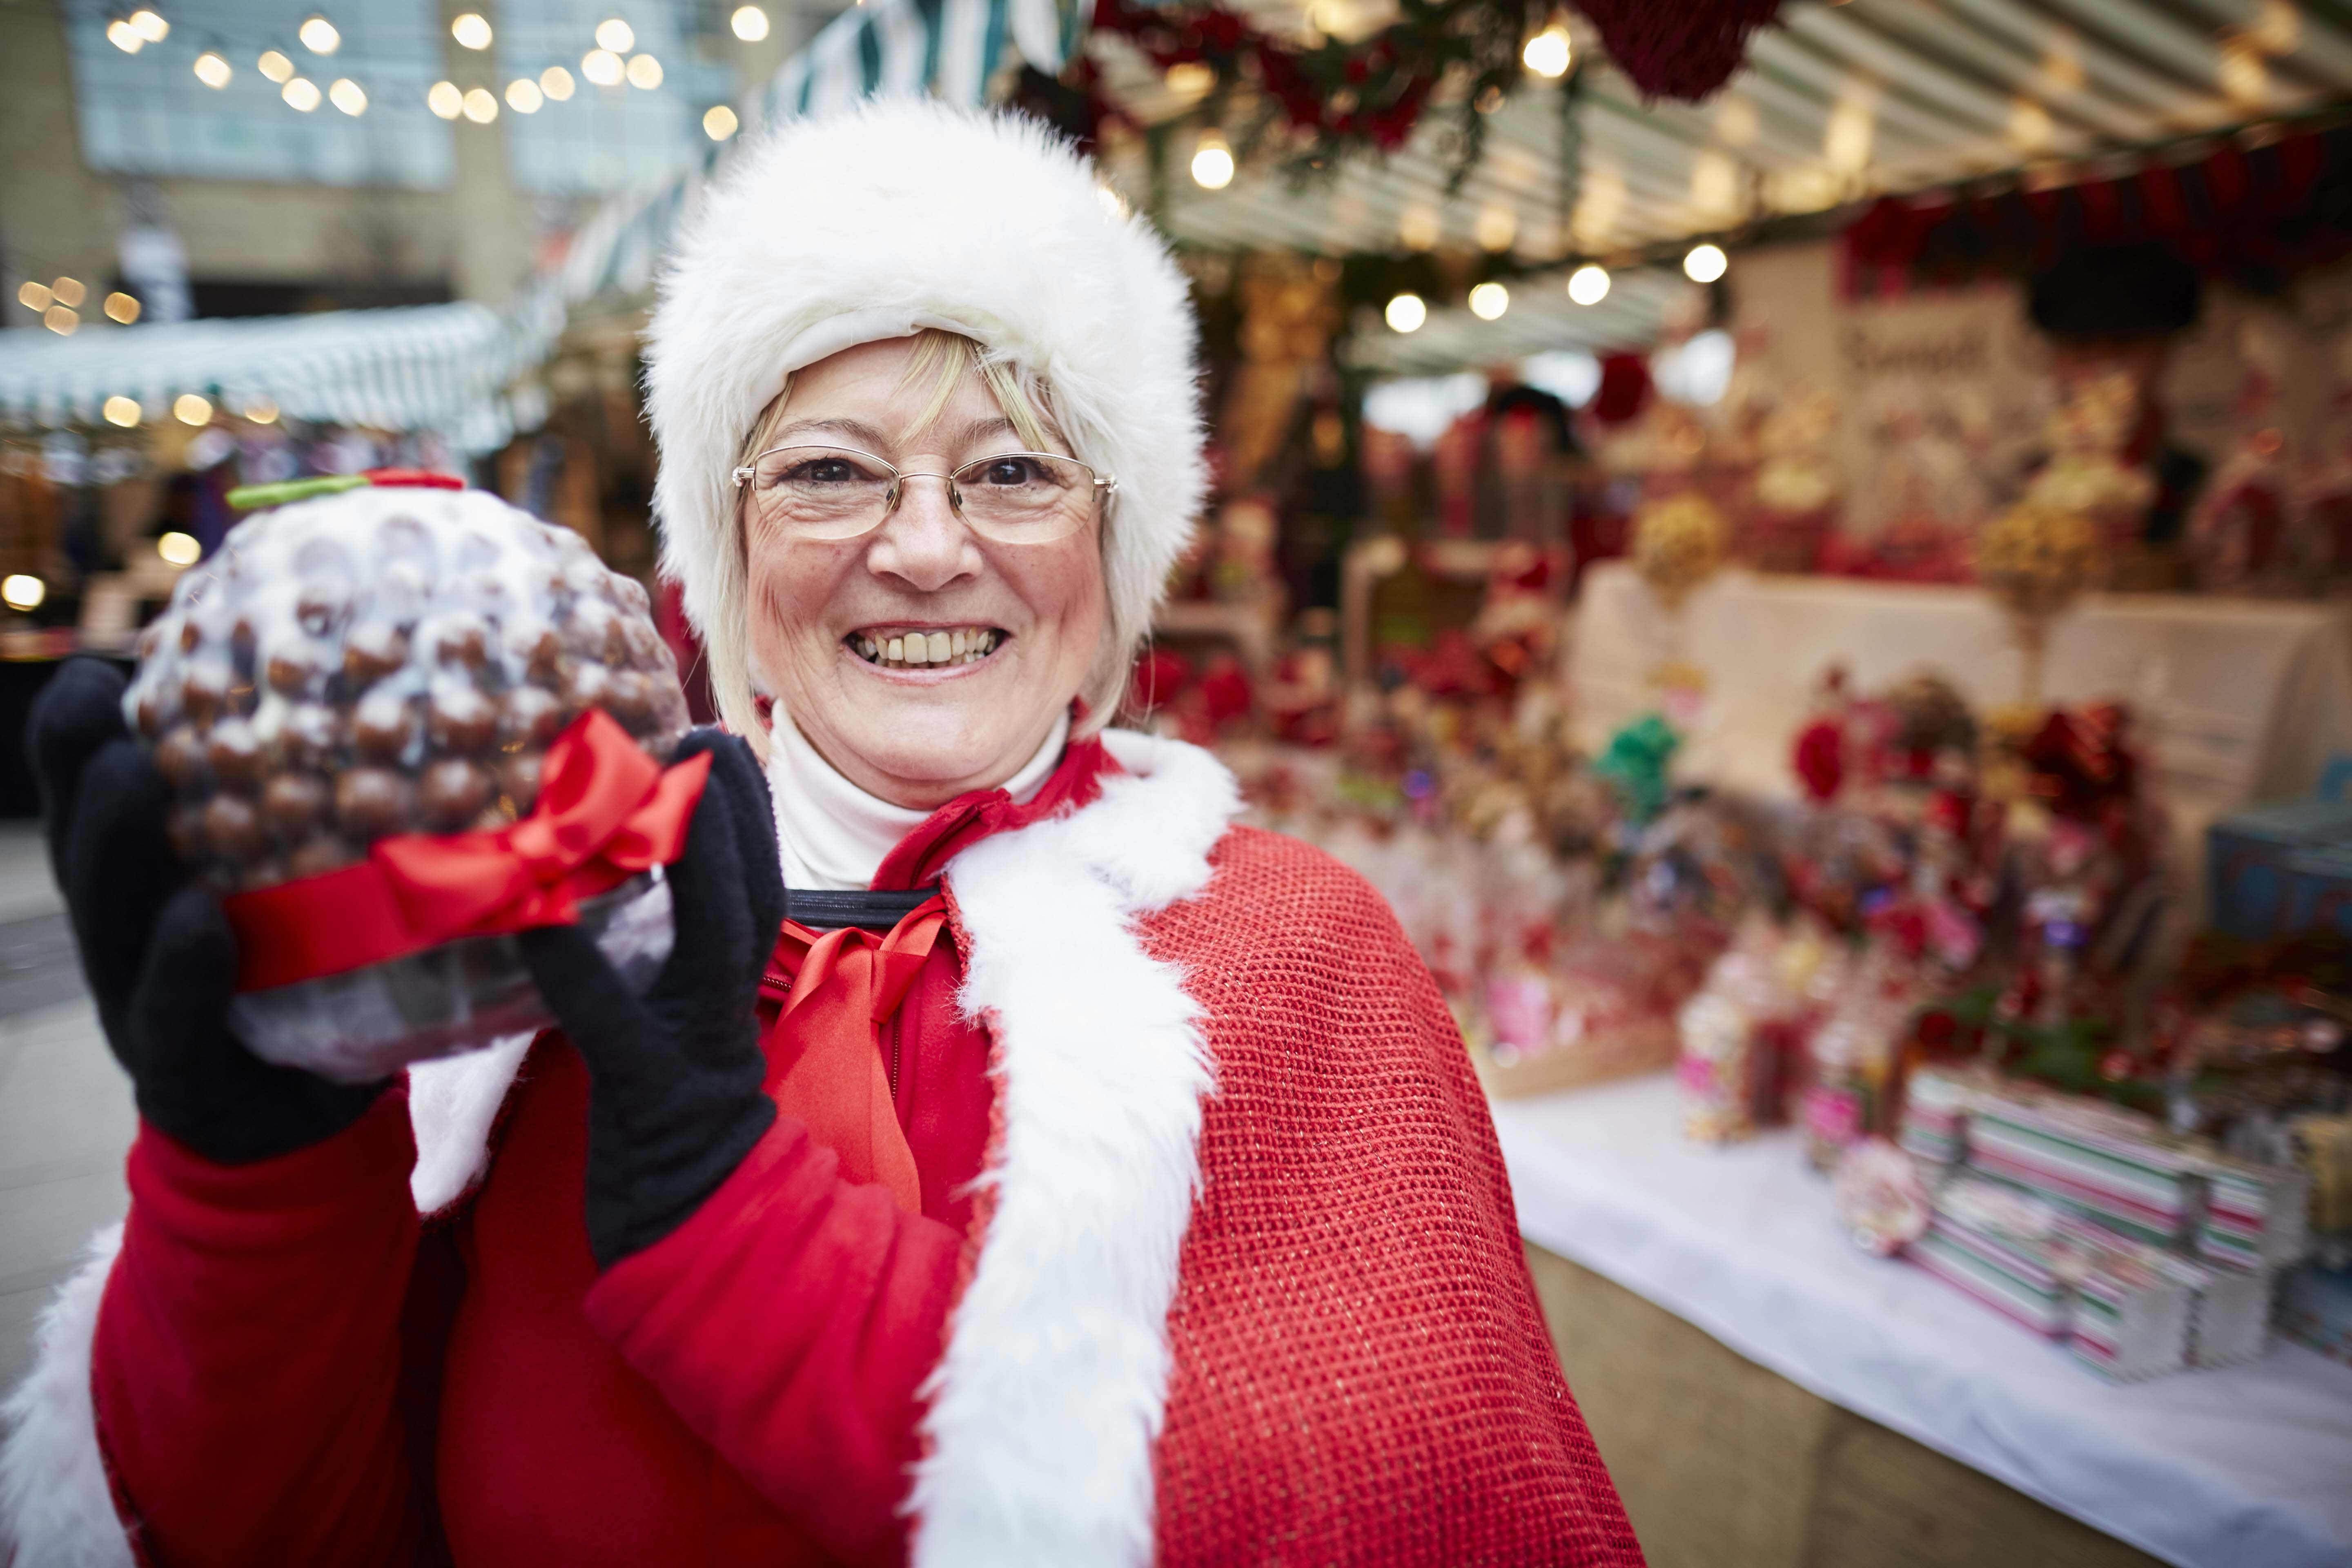 Victorian Christmas Market at the Lowry Outlet at Media City. Maureen Howarth from sweetshop Balloomin Marvellous (cor)